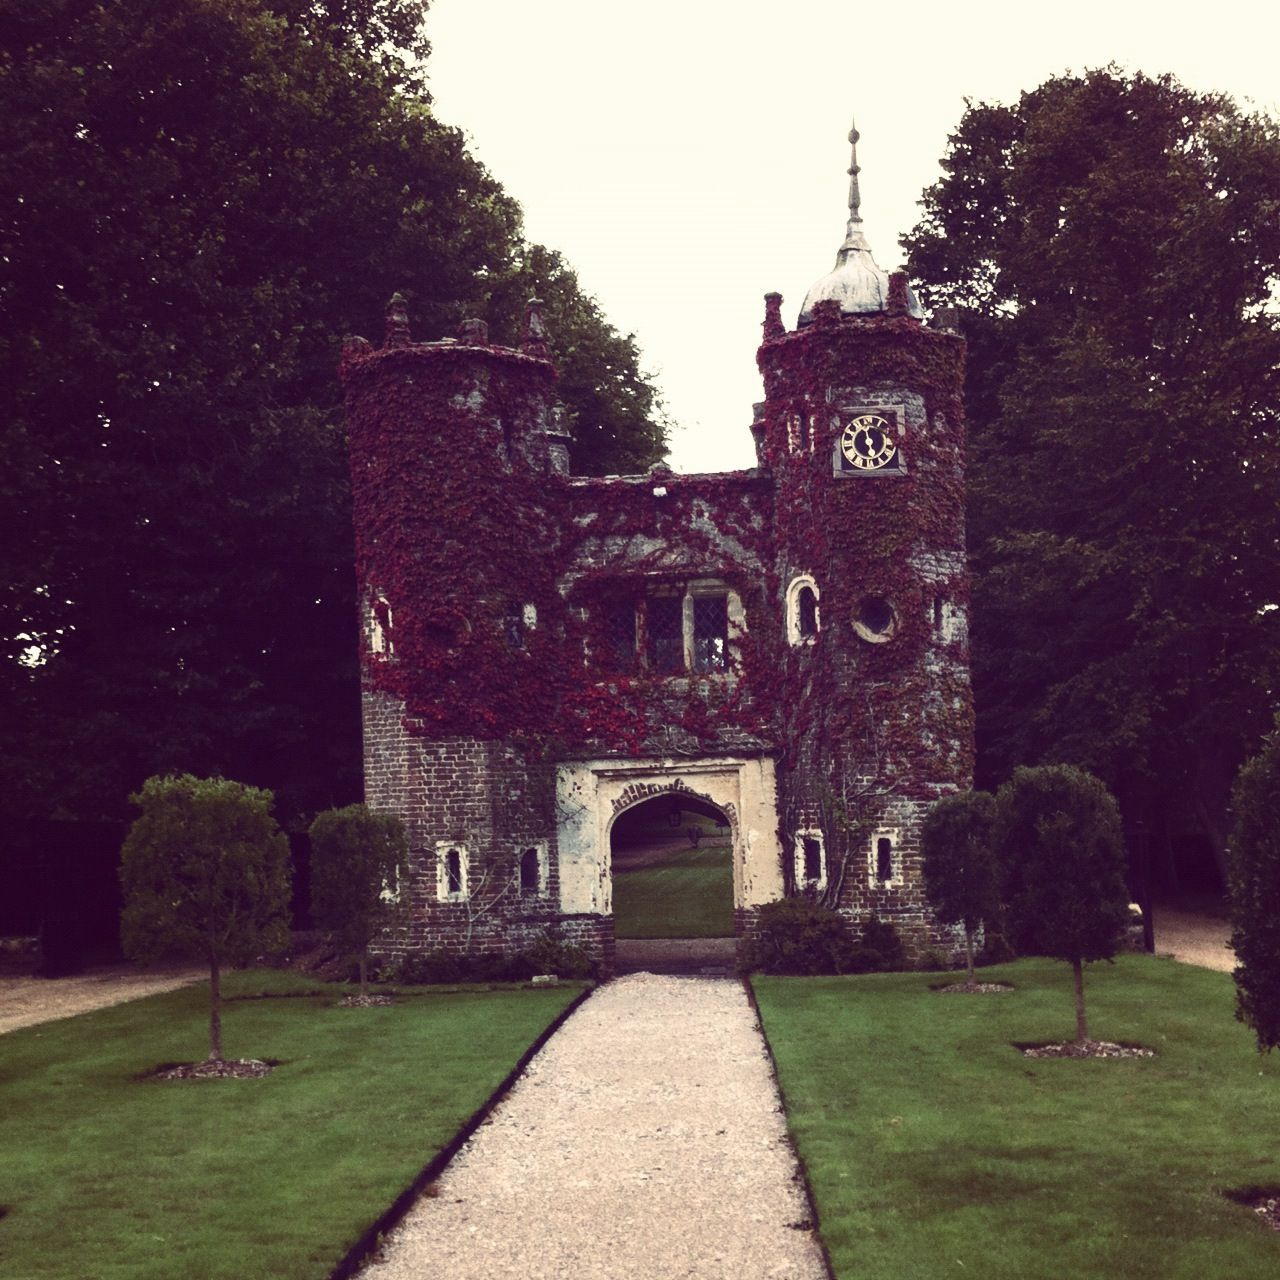 The Gatehouse at Cuckfield Park....said to be haunted by a wicked dame who lived there in the 1800's...